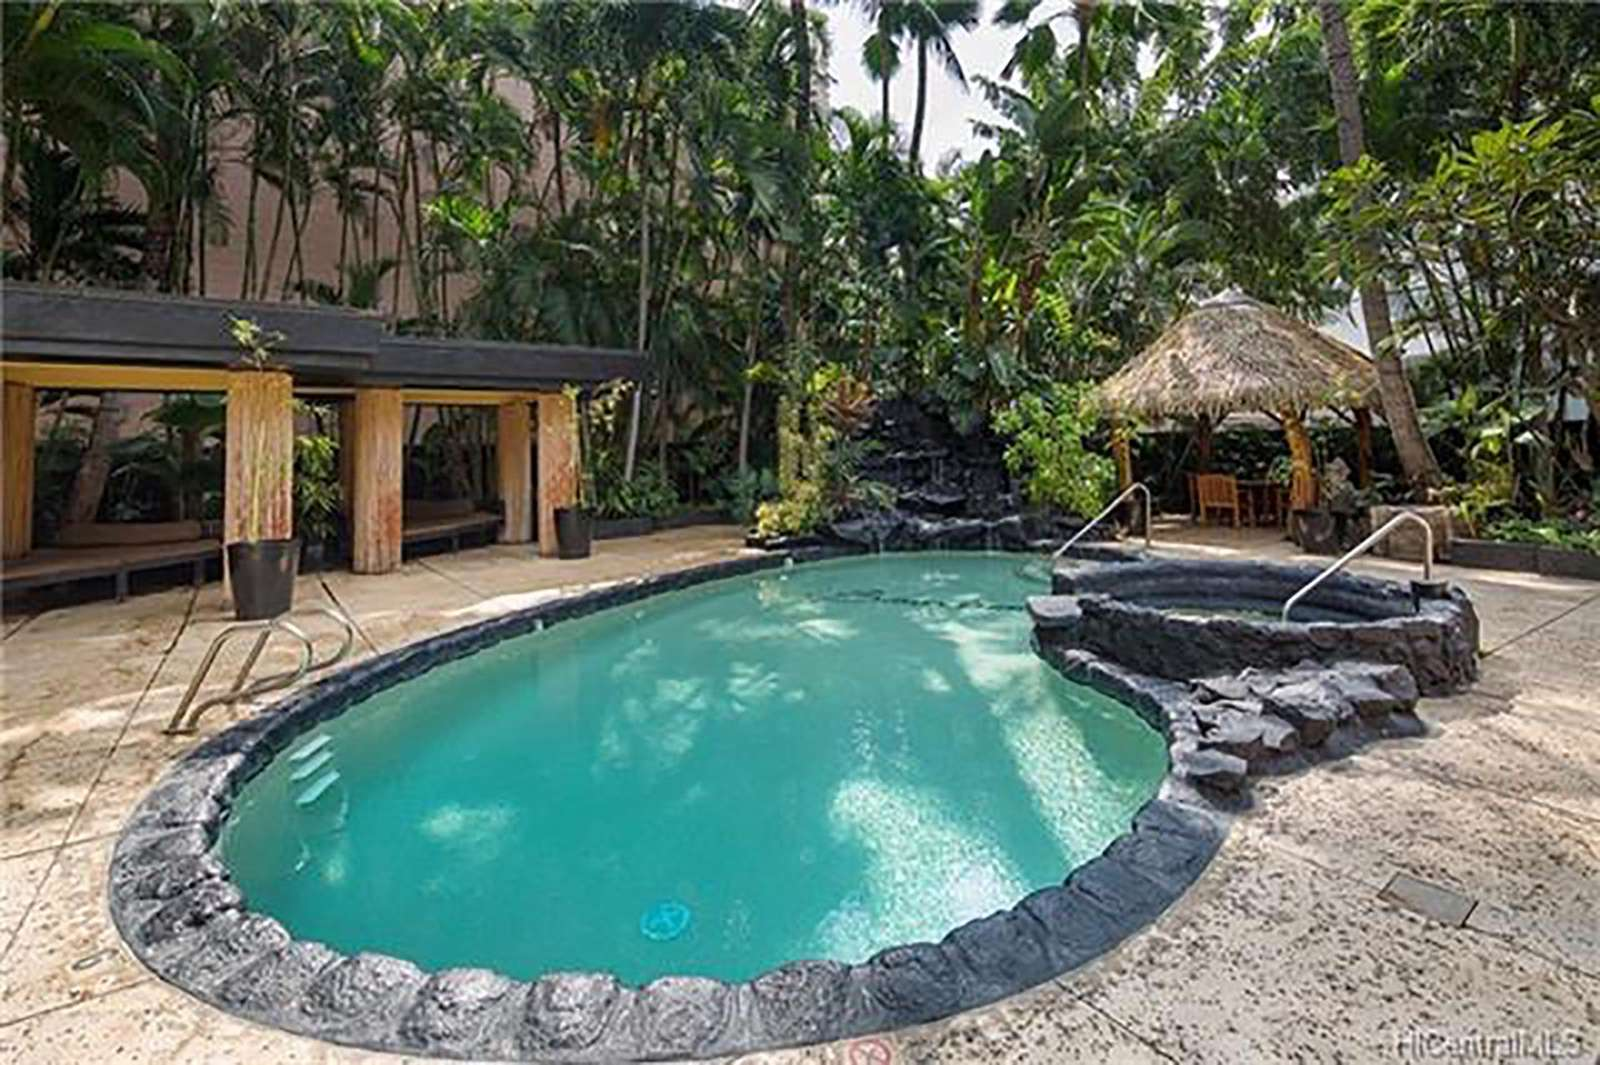 Our communal pool